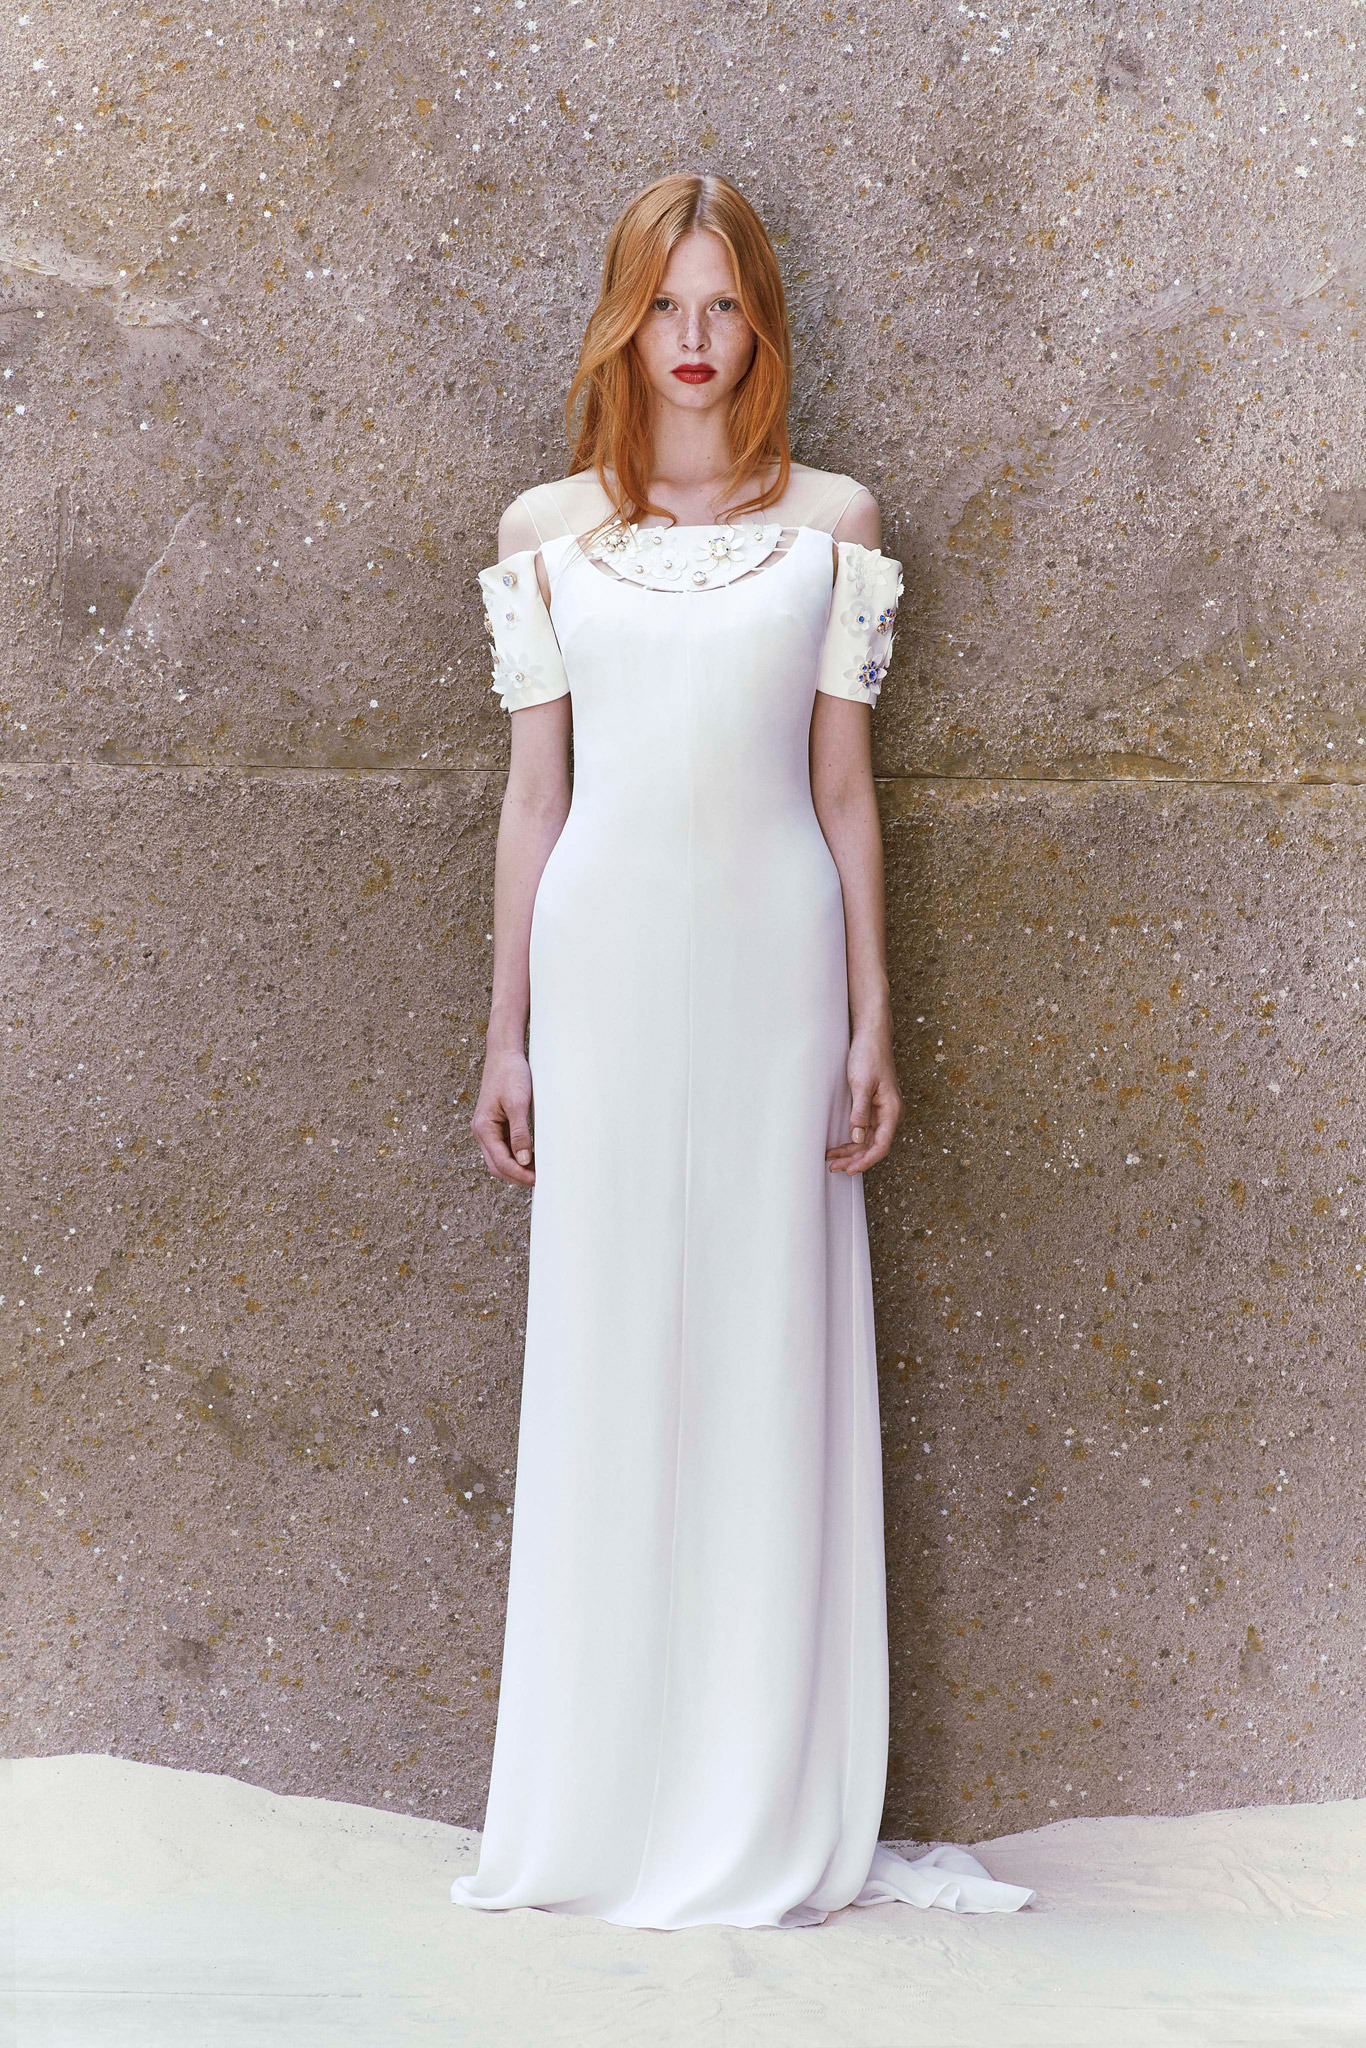 Dani Witt | Honor Resort 2015 (Photography: courtesy of Resort via Style.com)